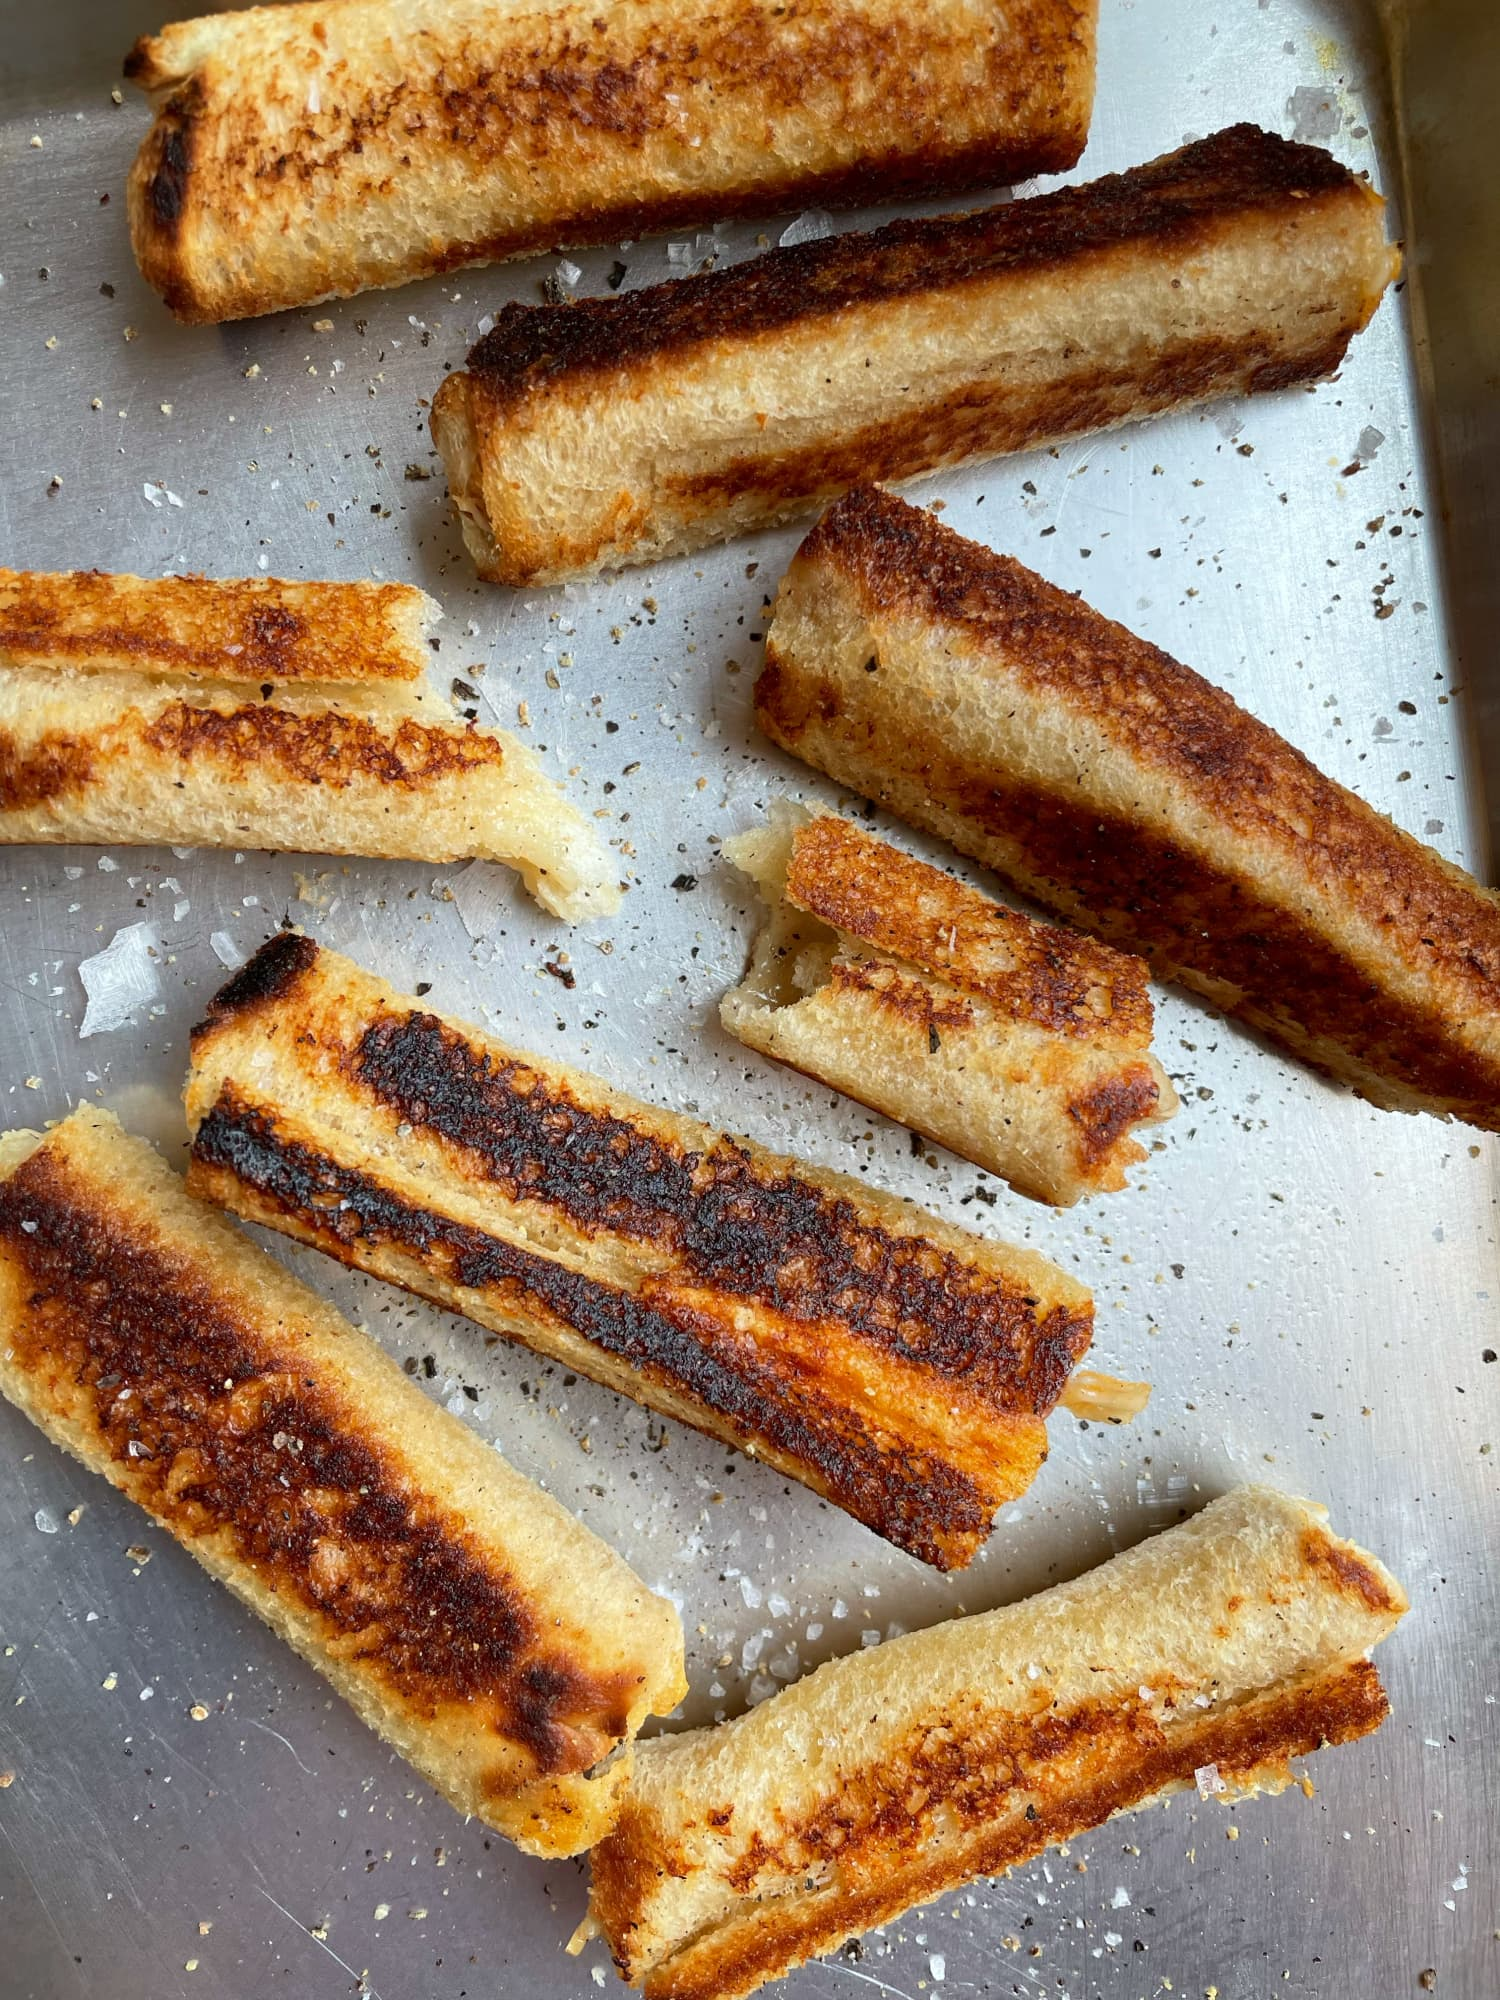 Grilled Cheese Roll-Ups Are a Crispy, Gooey Treat for Kids (or Adults)